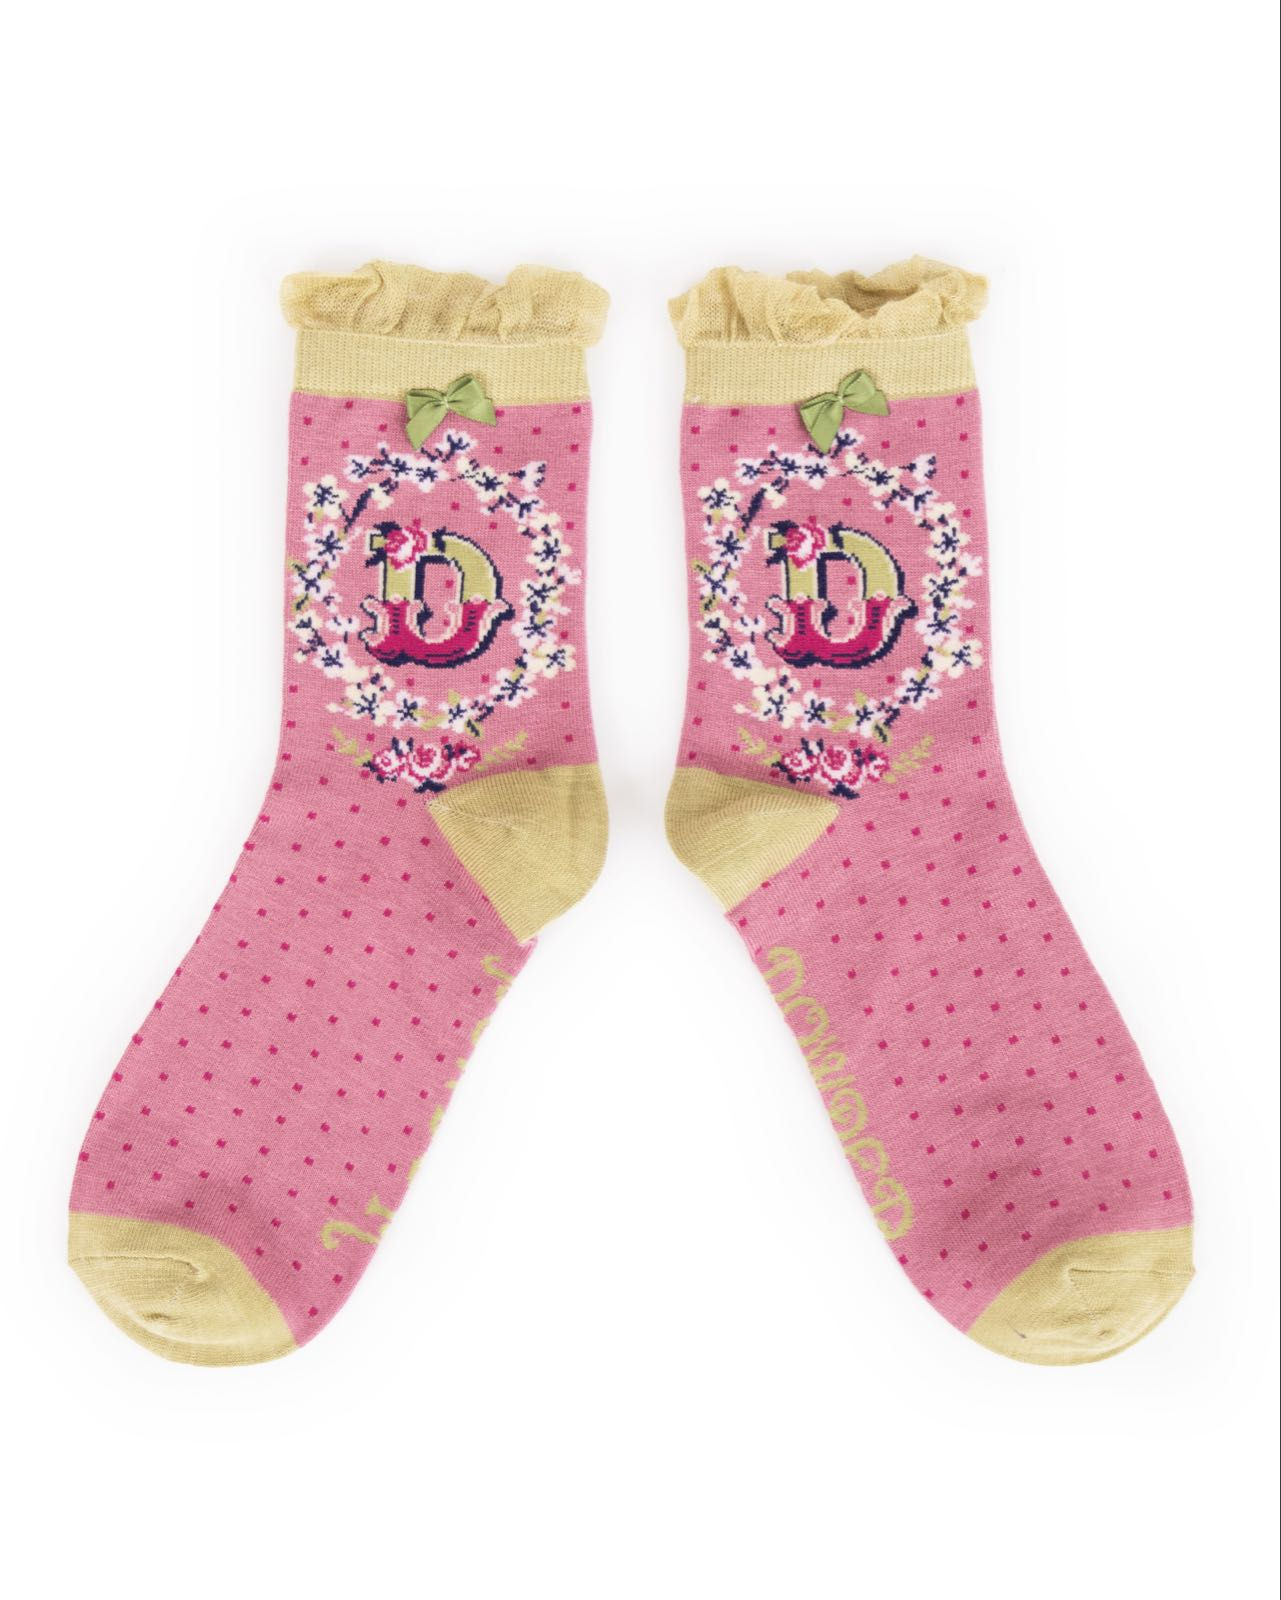 Powder Alphabet socks D (product may differ from item shown in the photo)